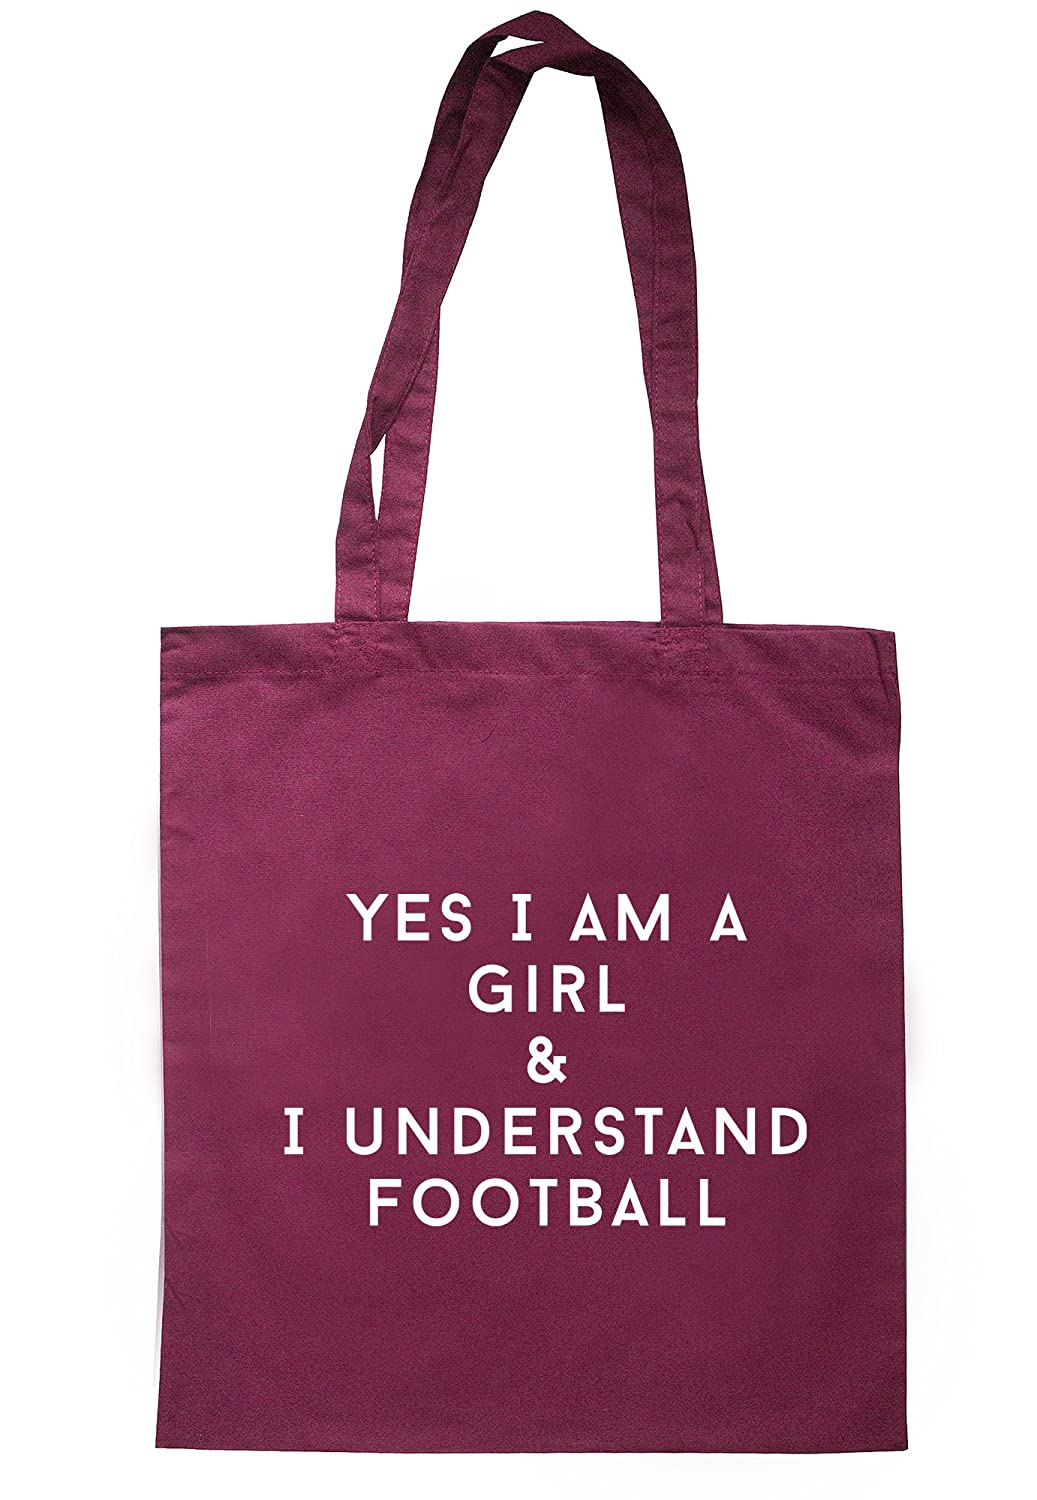 illustratedidentity Yes I Am A Girl And Yes I Understand Football Tote Bag 37.5cm x 42cm with long handles TB0785-TB-NV